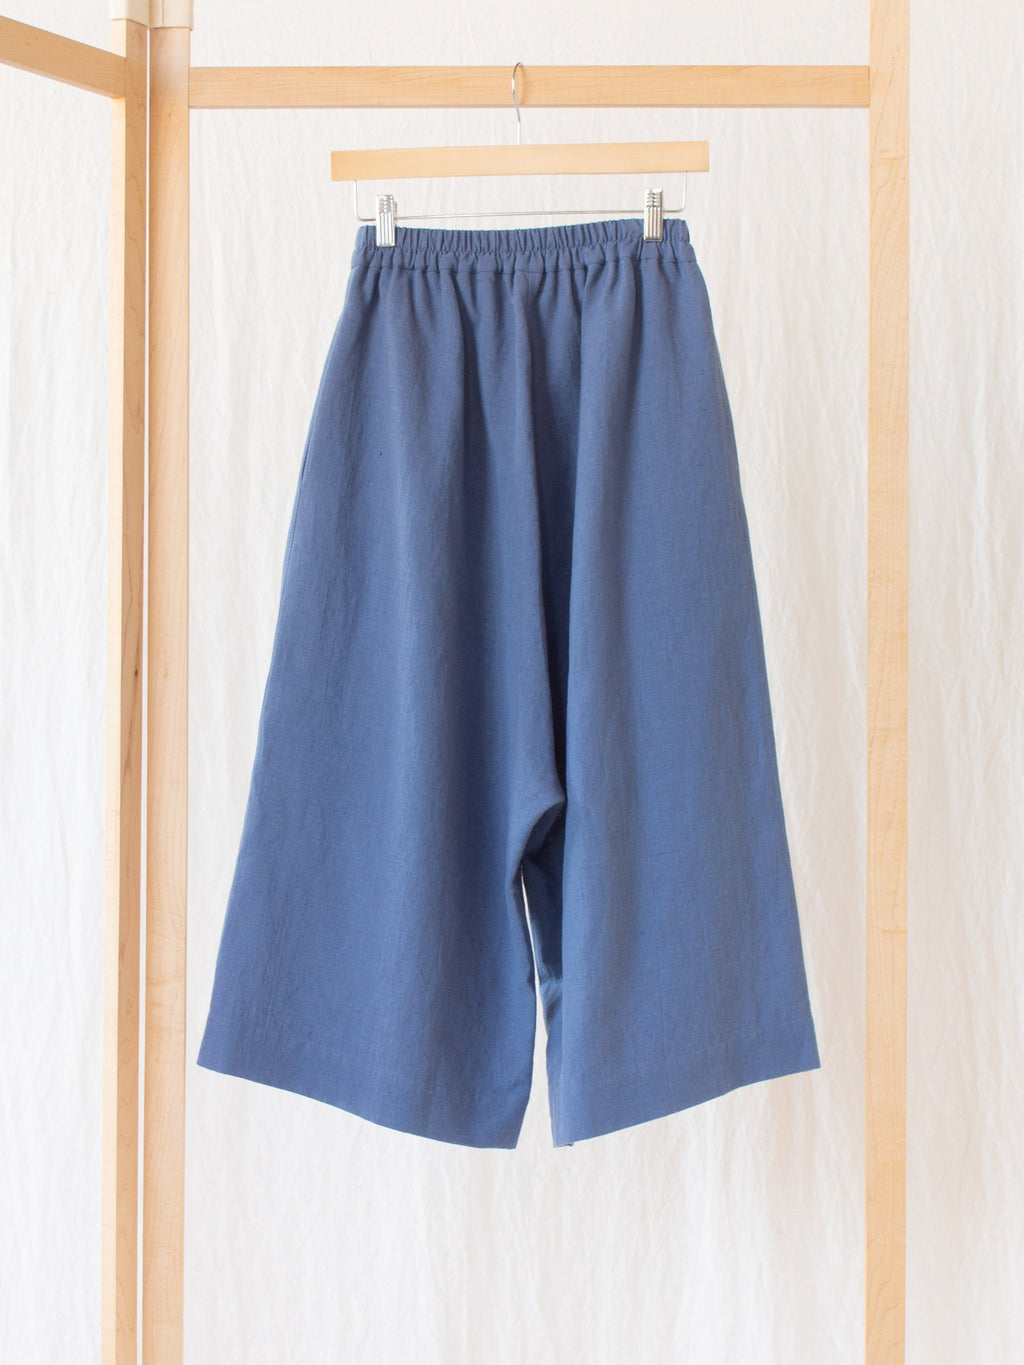 Namu Shop - muku Li / Co Wide Leg Pants - Pale Indigo